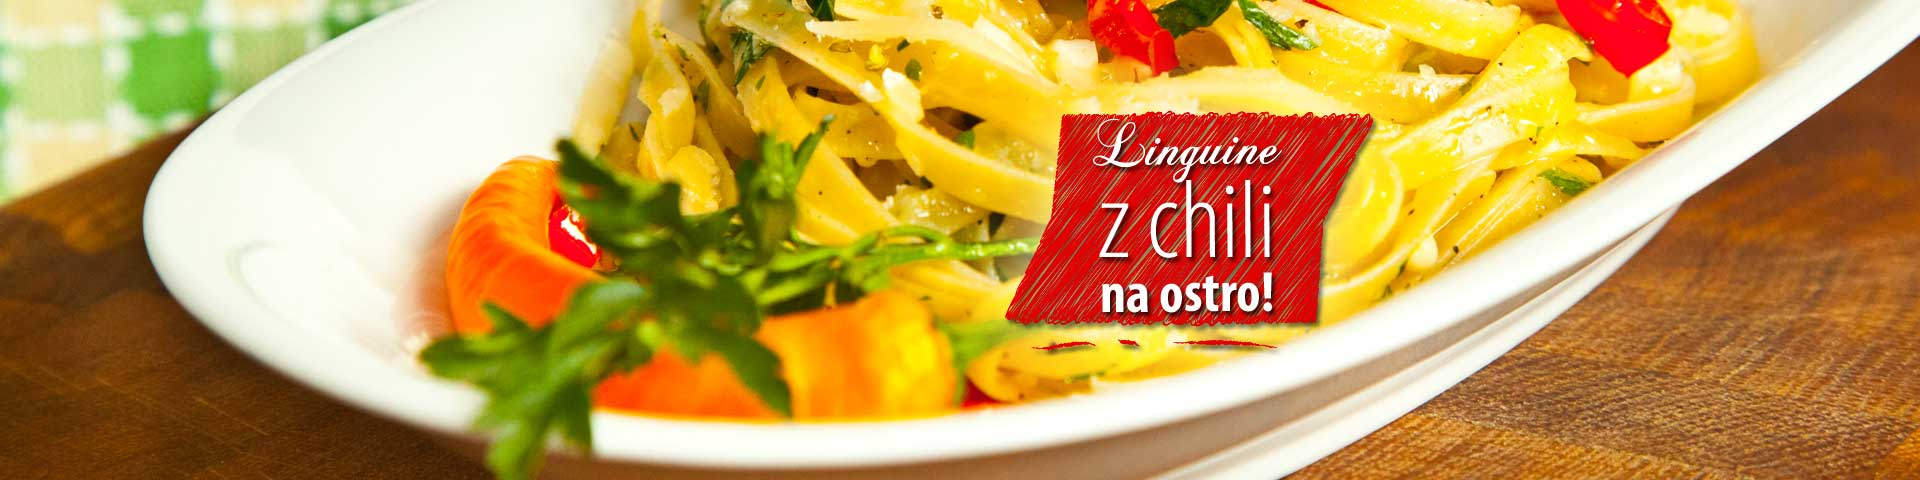 Linguine z chili na ostro